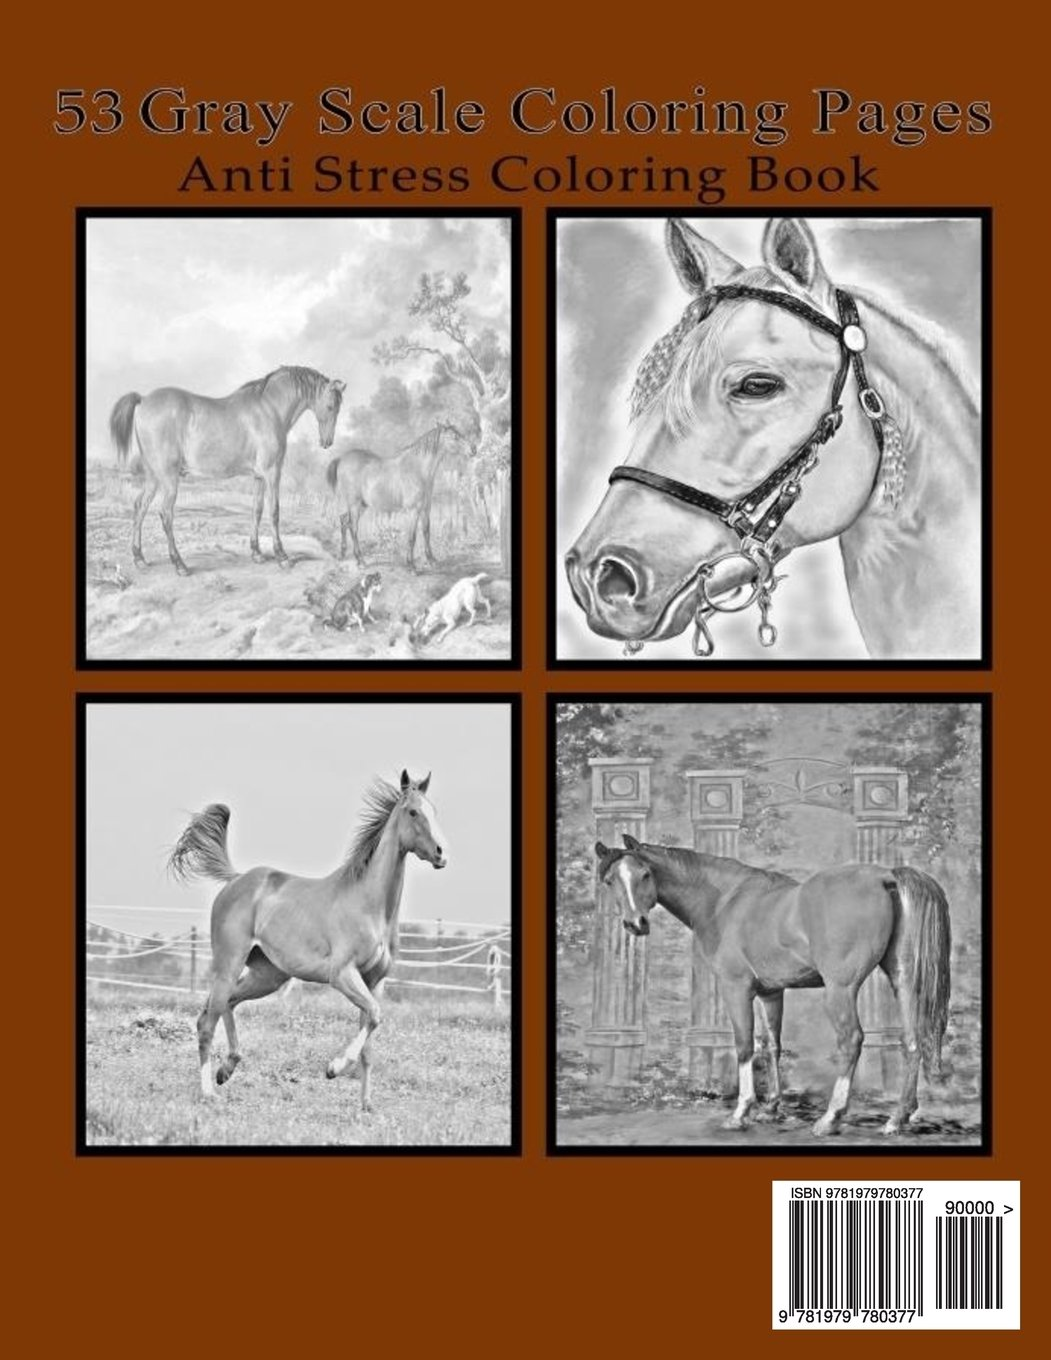 Horse Coloring Book For Adults - Order Coloring Books and Notebooks